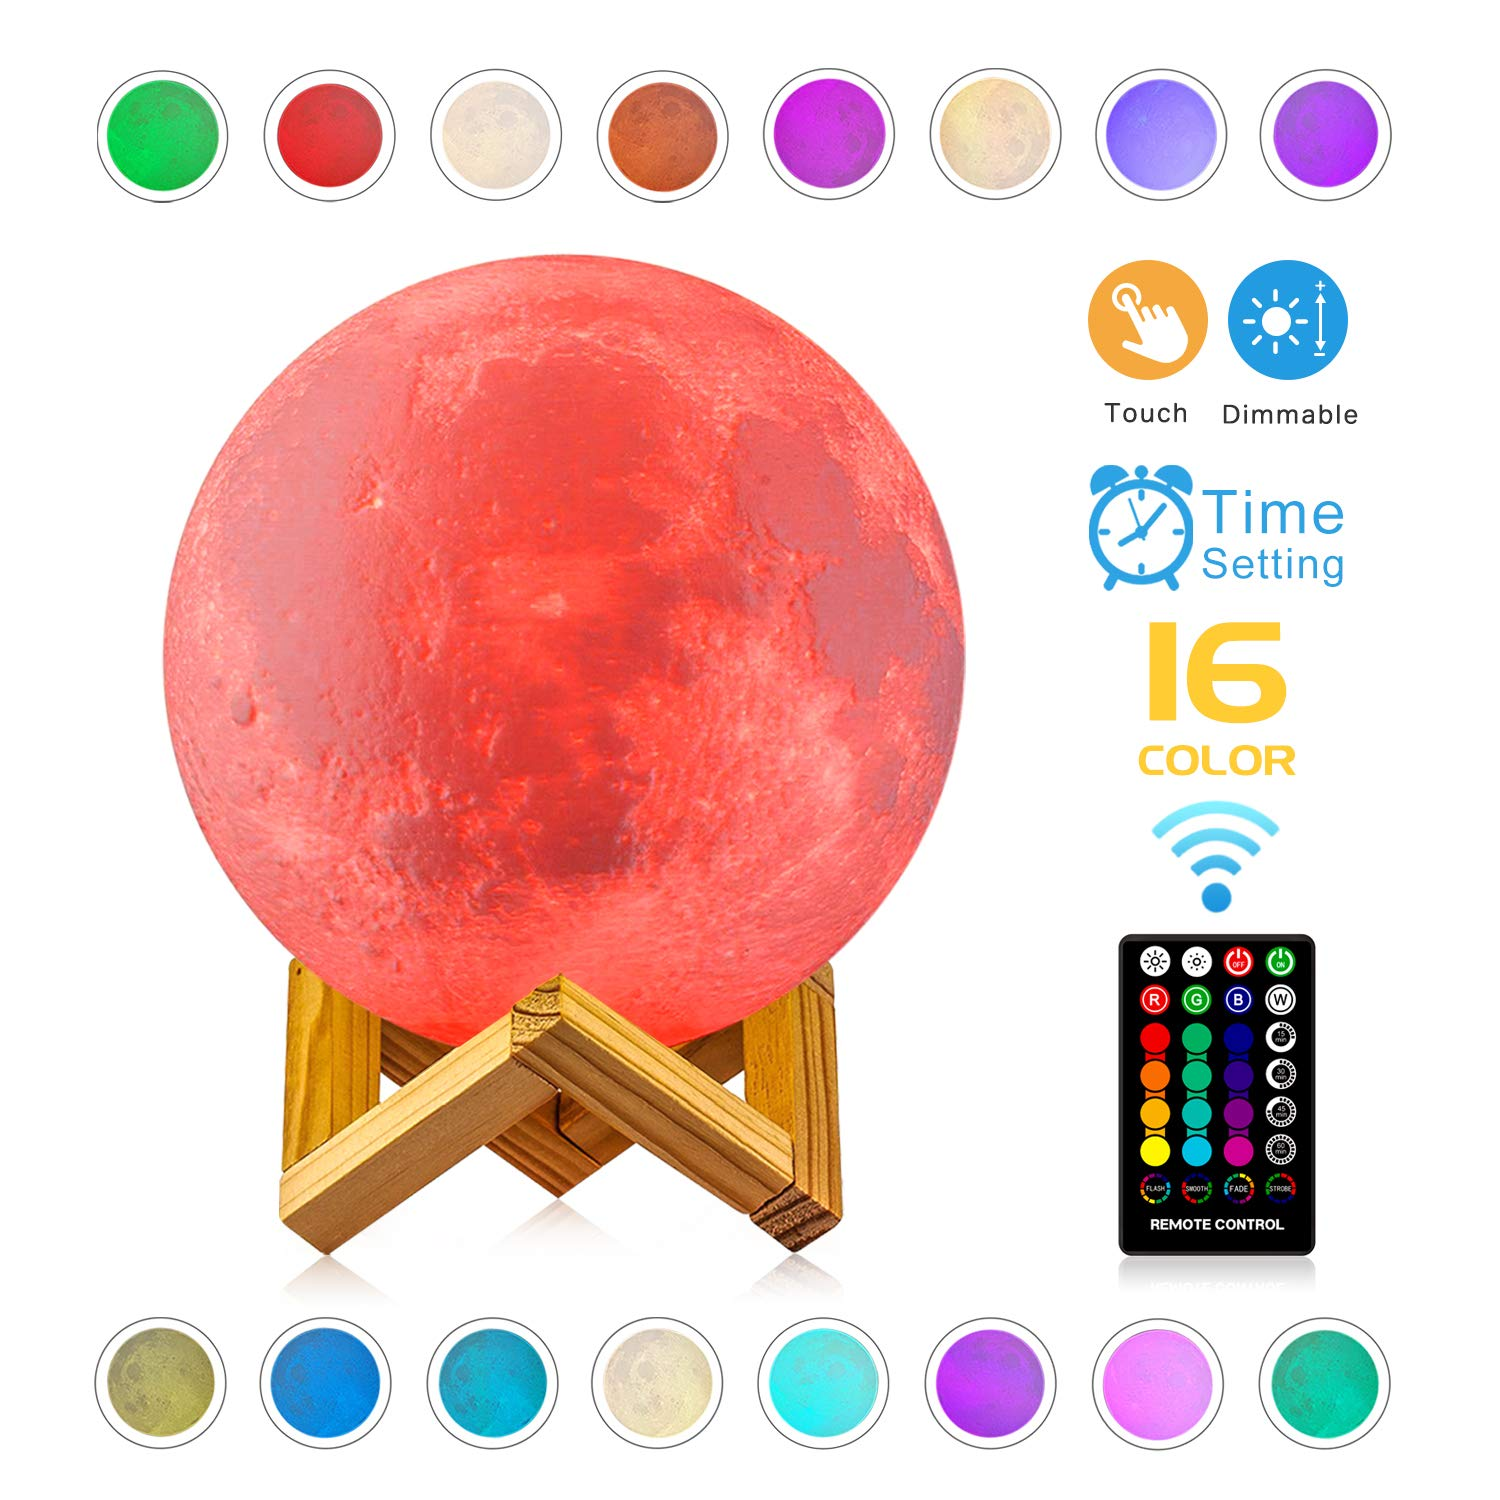 Moon Lamp - LOGROTATE 16 Colors, Dimmable, Rechargeable Lunar Night Light (5.9 inch) Full Set with Wooden Stand, Remote & Touch Control - Cool Nursery Decor for Baby, Kids Bedroom, Birthday Day Gifts